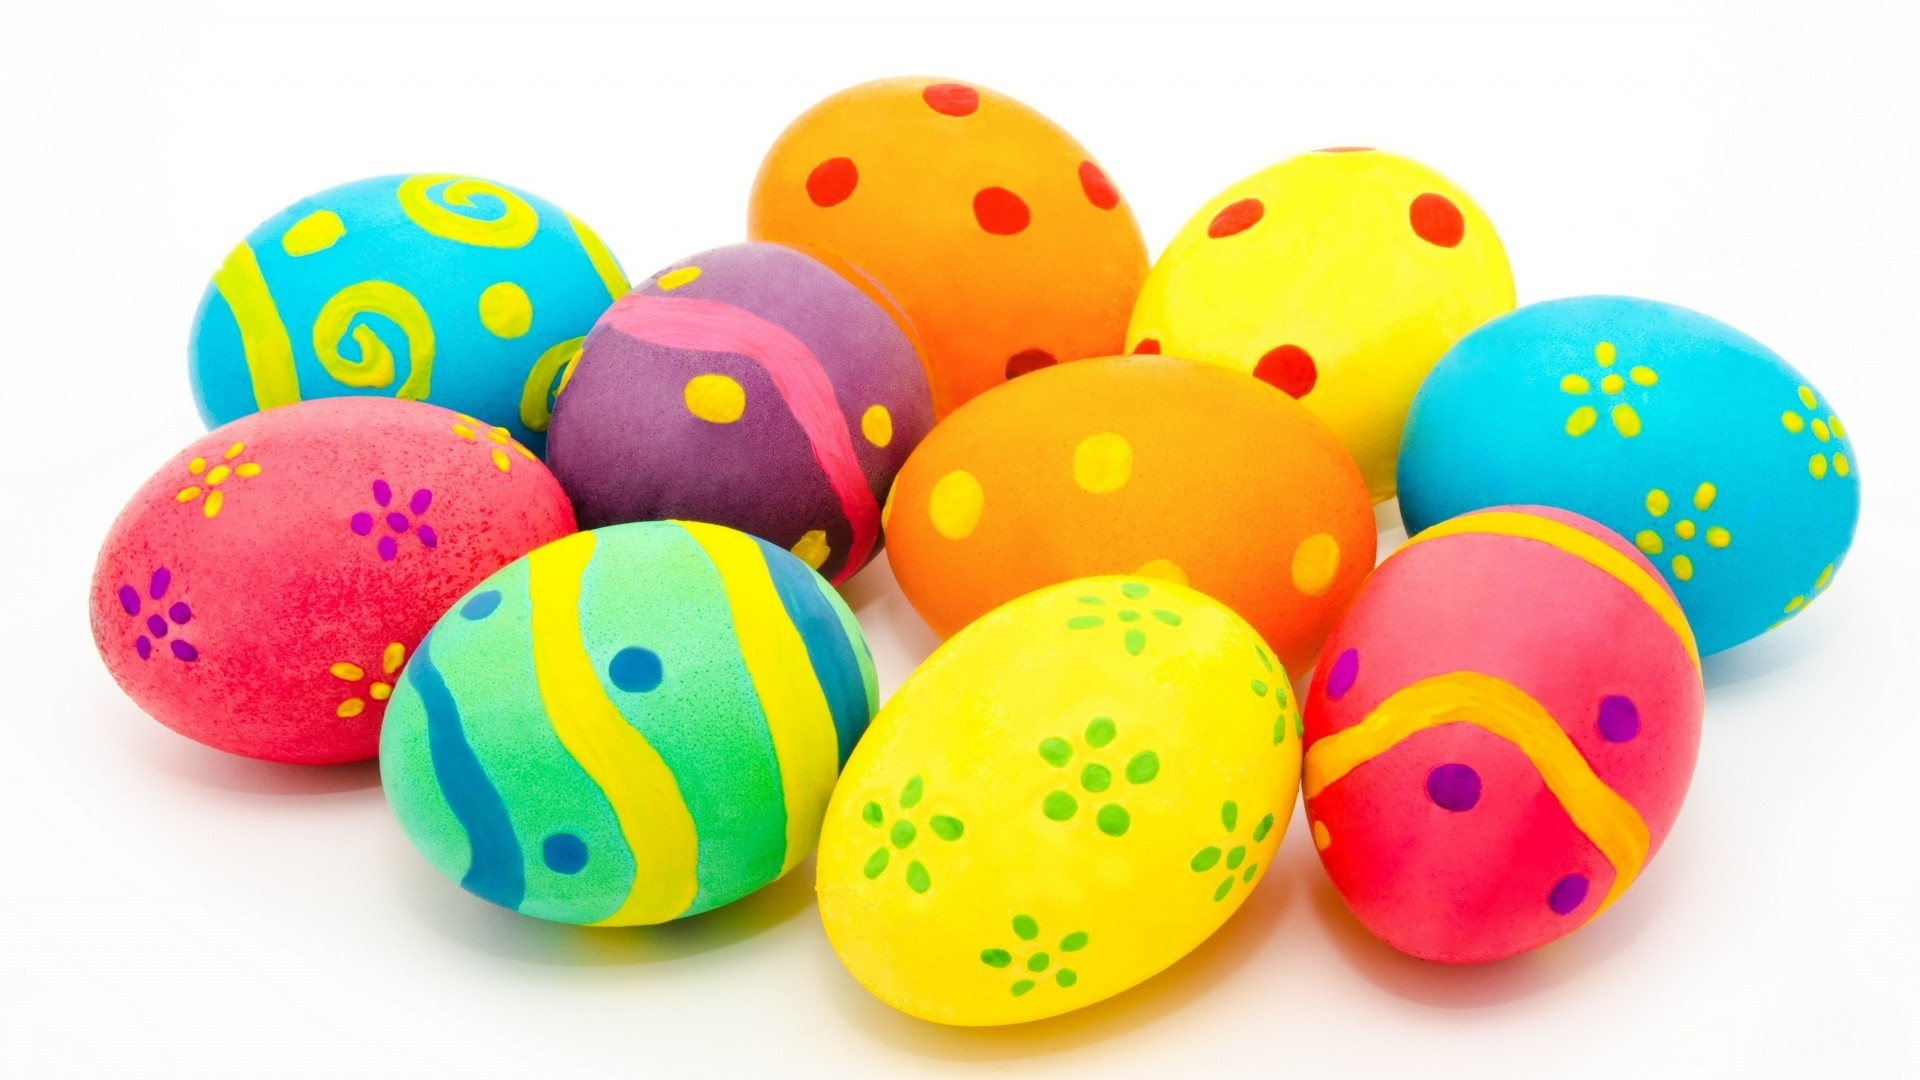 Easter Egg Decoration HD